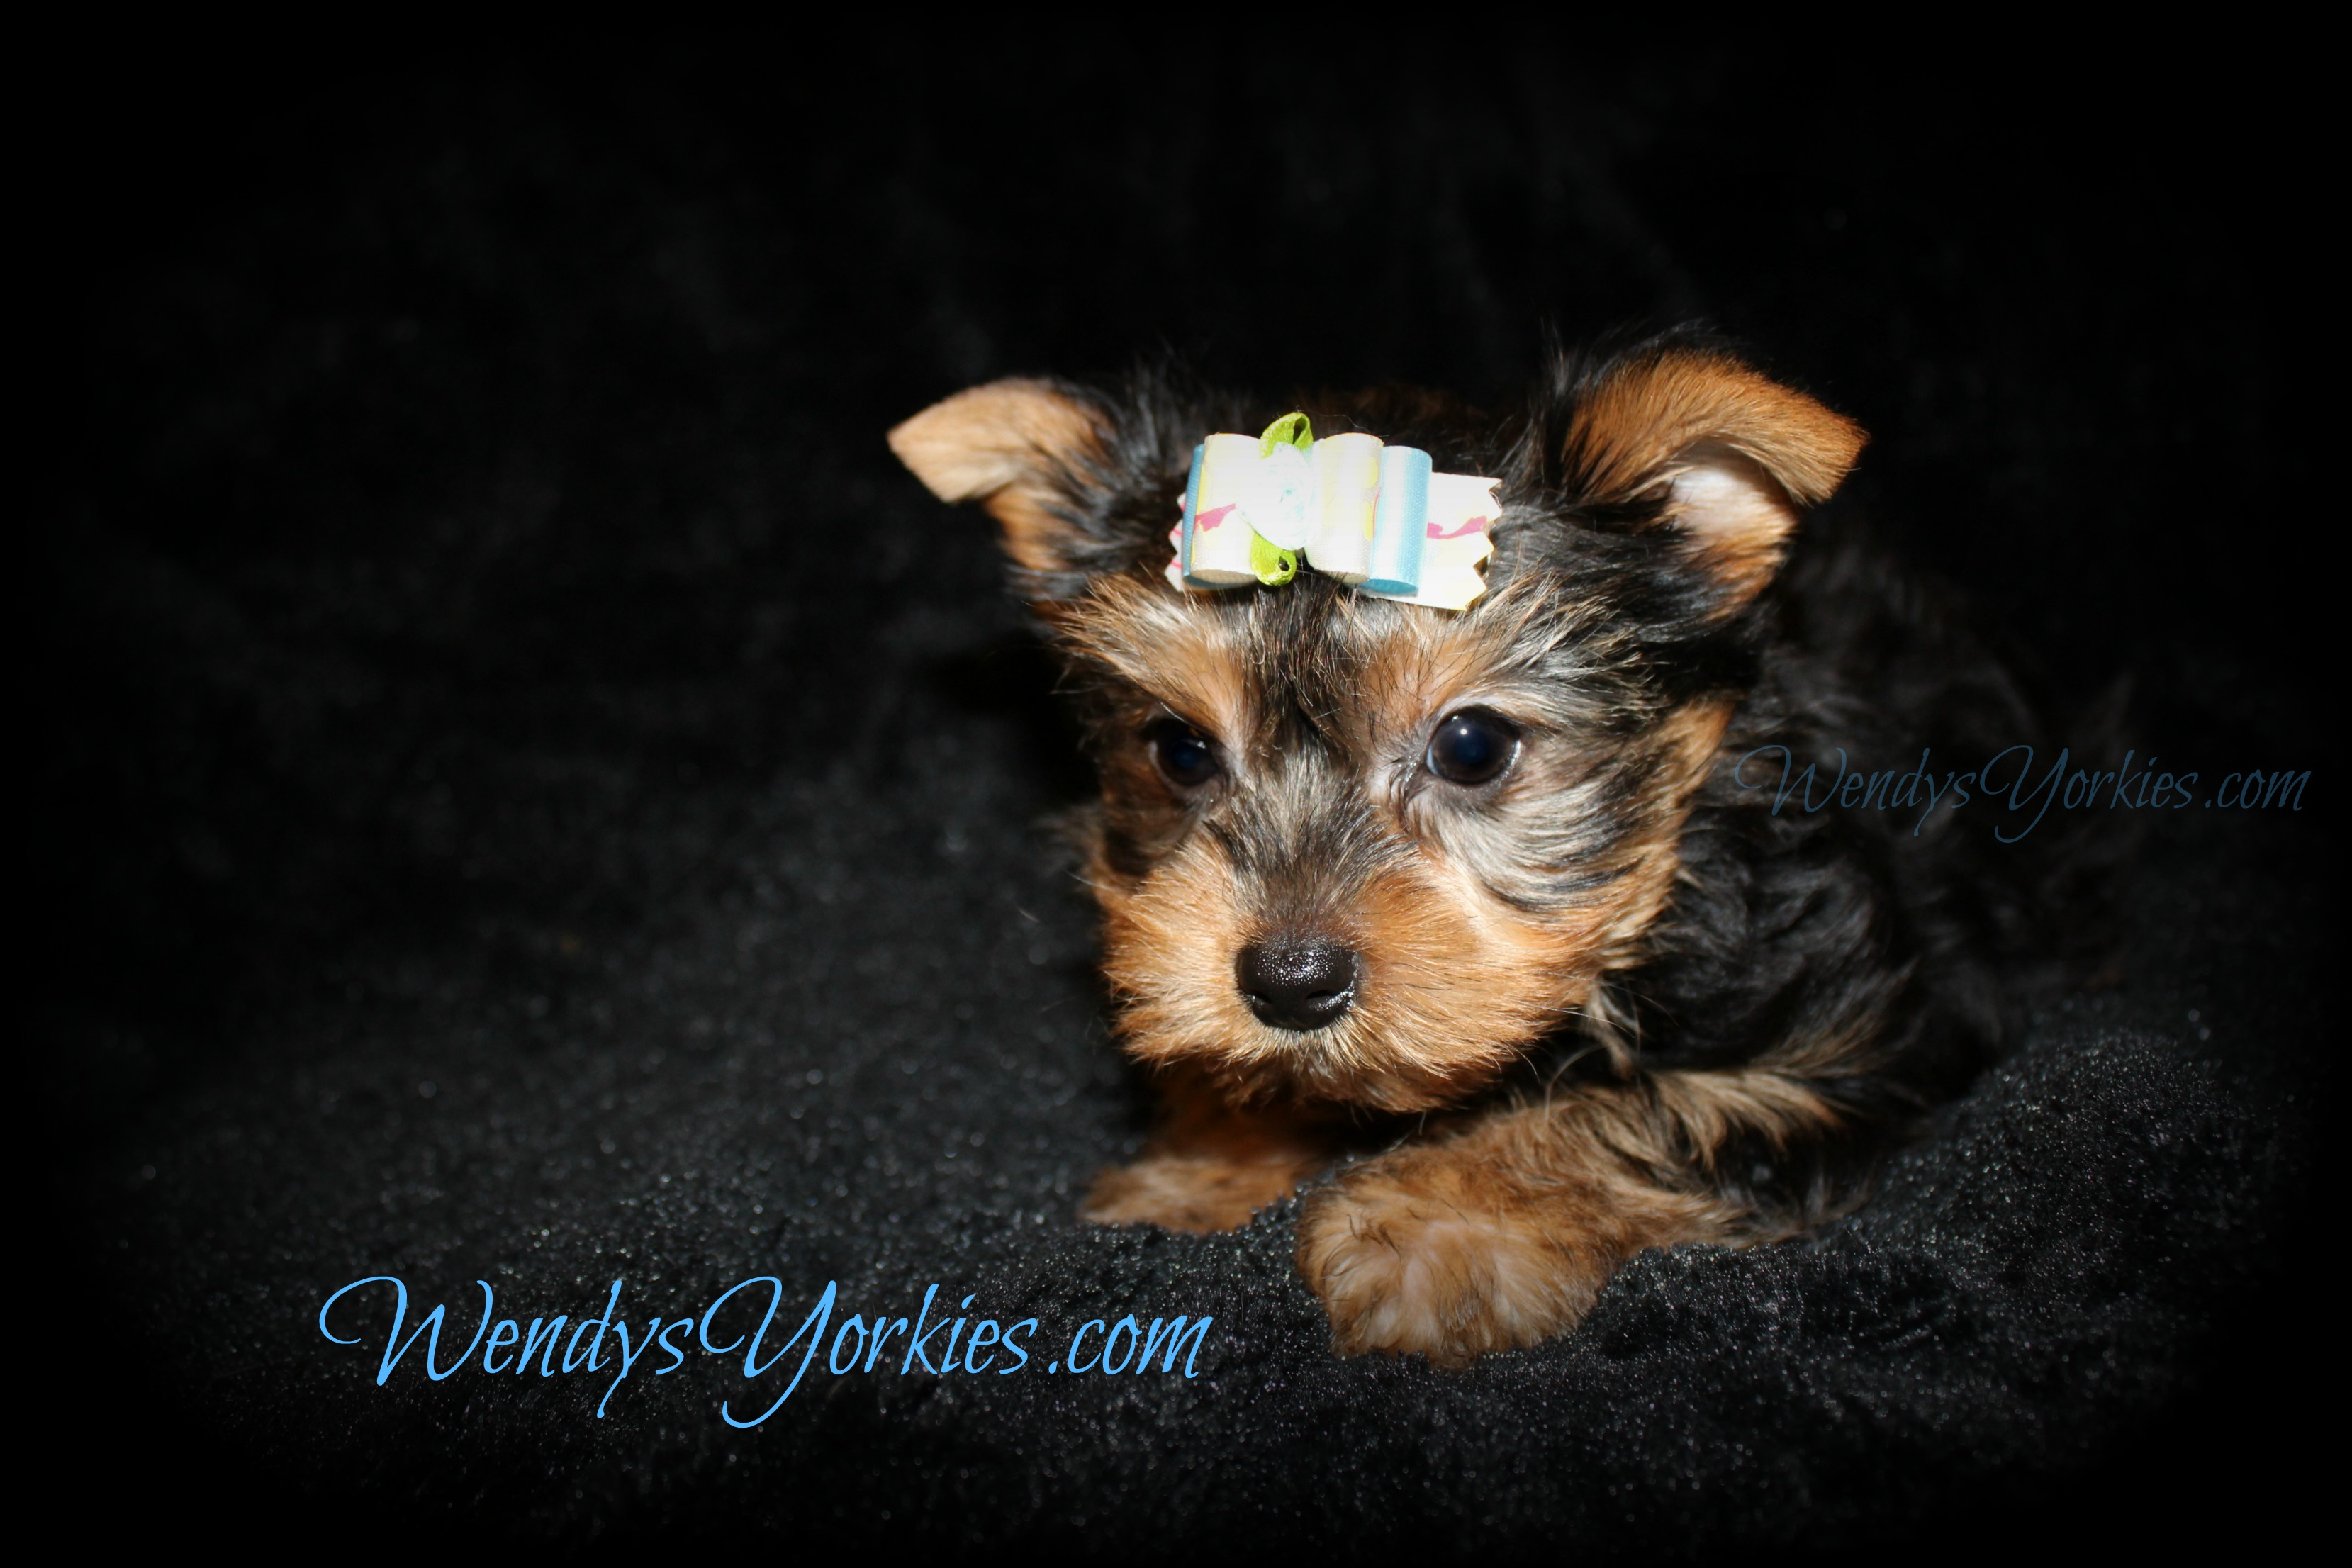 Male Yorkie puppies for sale, Teacup Yorkie puppies for sale in Texas, Anna m1, WendysYorkies.com